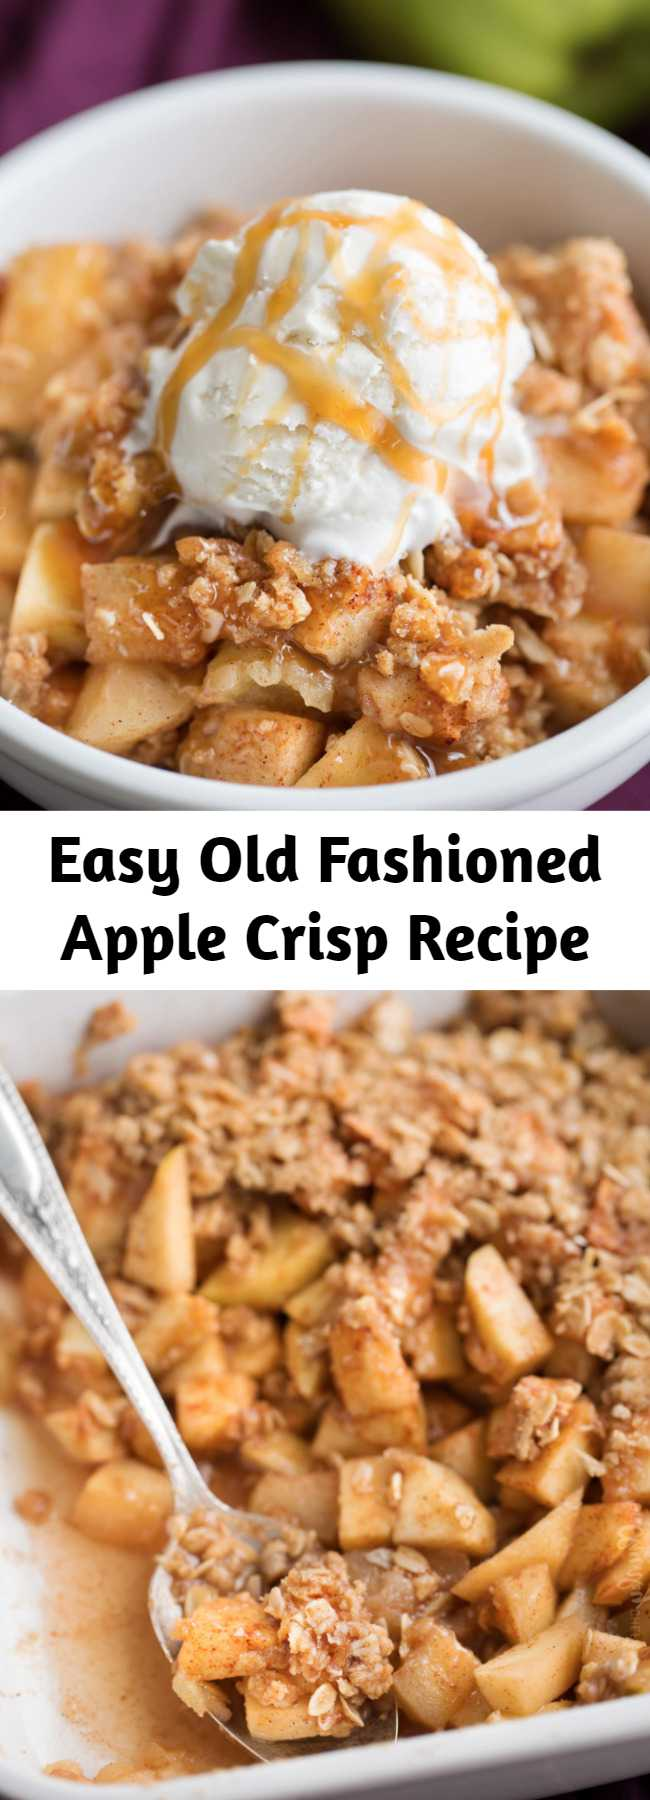 Easy Old Fashioned Apple Crisp Recipe - This easy apple crisp is made the old fashioned way like Grandma used to make, and is perfect with a scoop of vanilla ice cream and salted caramel sauce! #applecrisp #crisp #apples #fall #baking #dessert #recipe